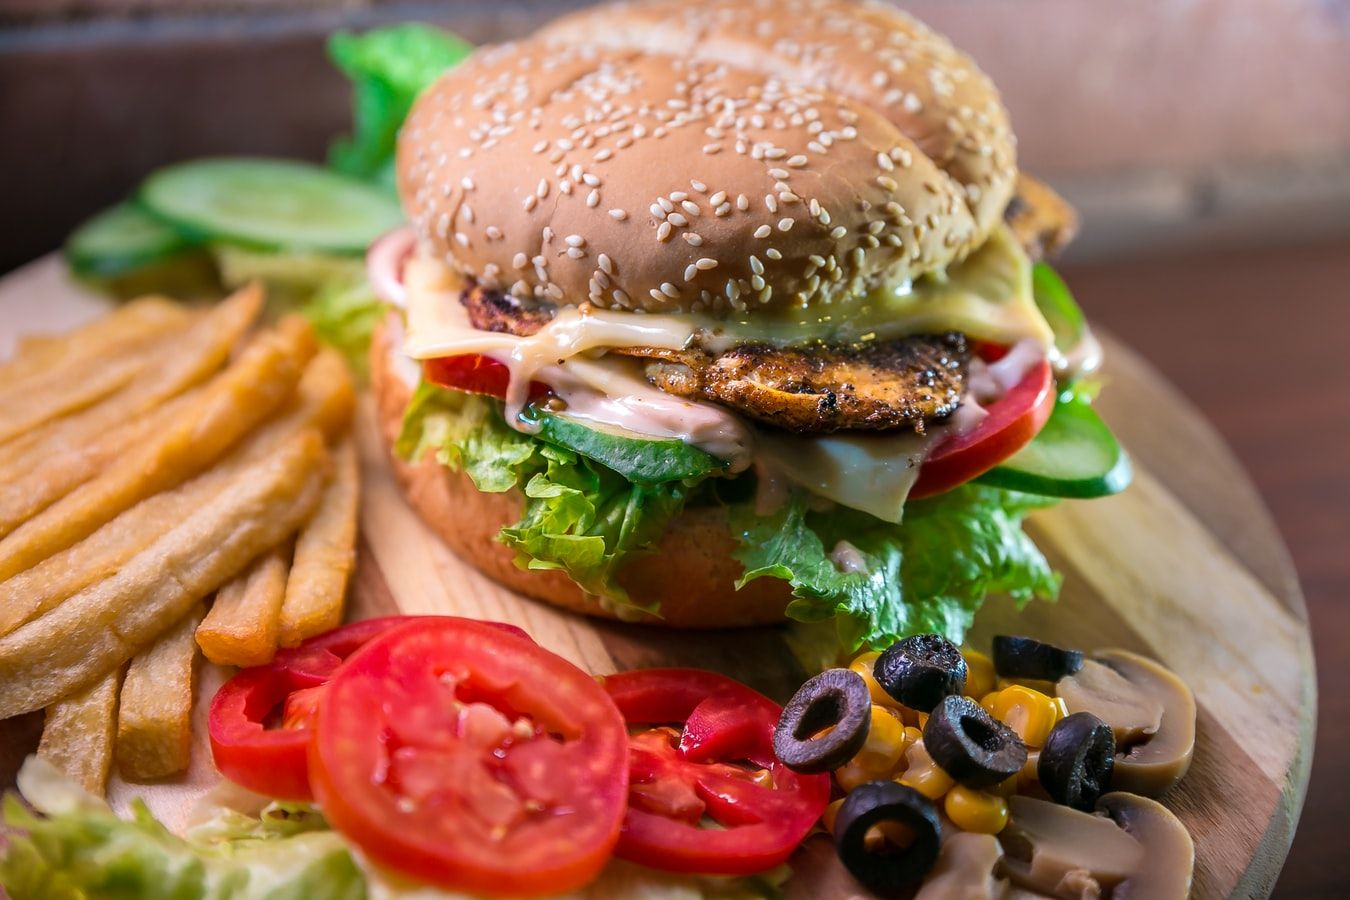 Sesame seed bun sandwich with chicken, lettuce, mayo, tomato, olives, corn, and french fries